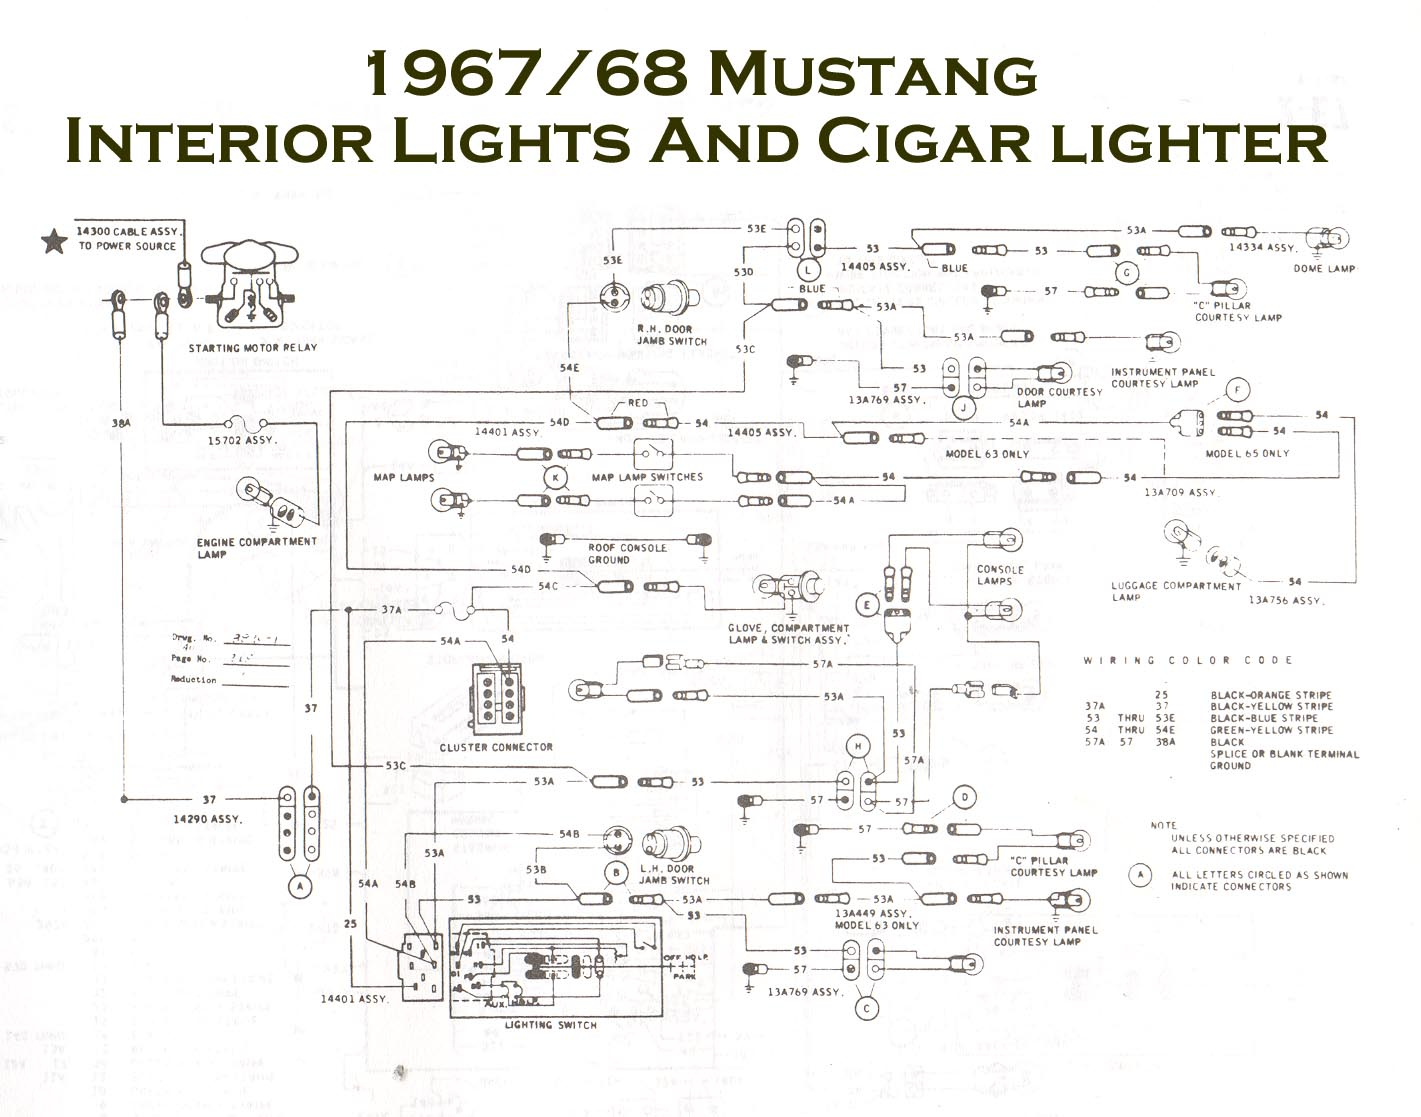 66 mustang ignition wiring diagram 3 phase drum switch vintage diagrams 1967 68 console jpg